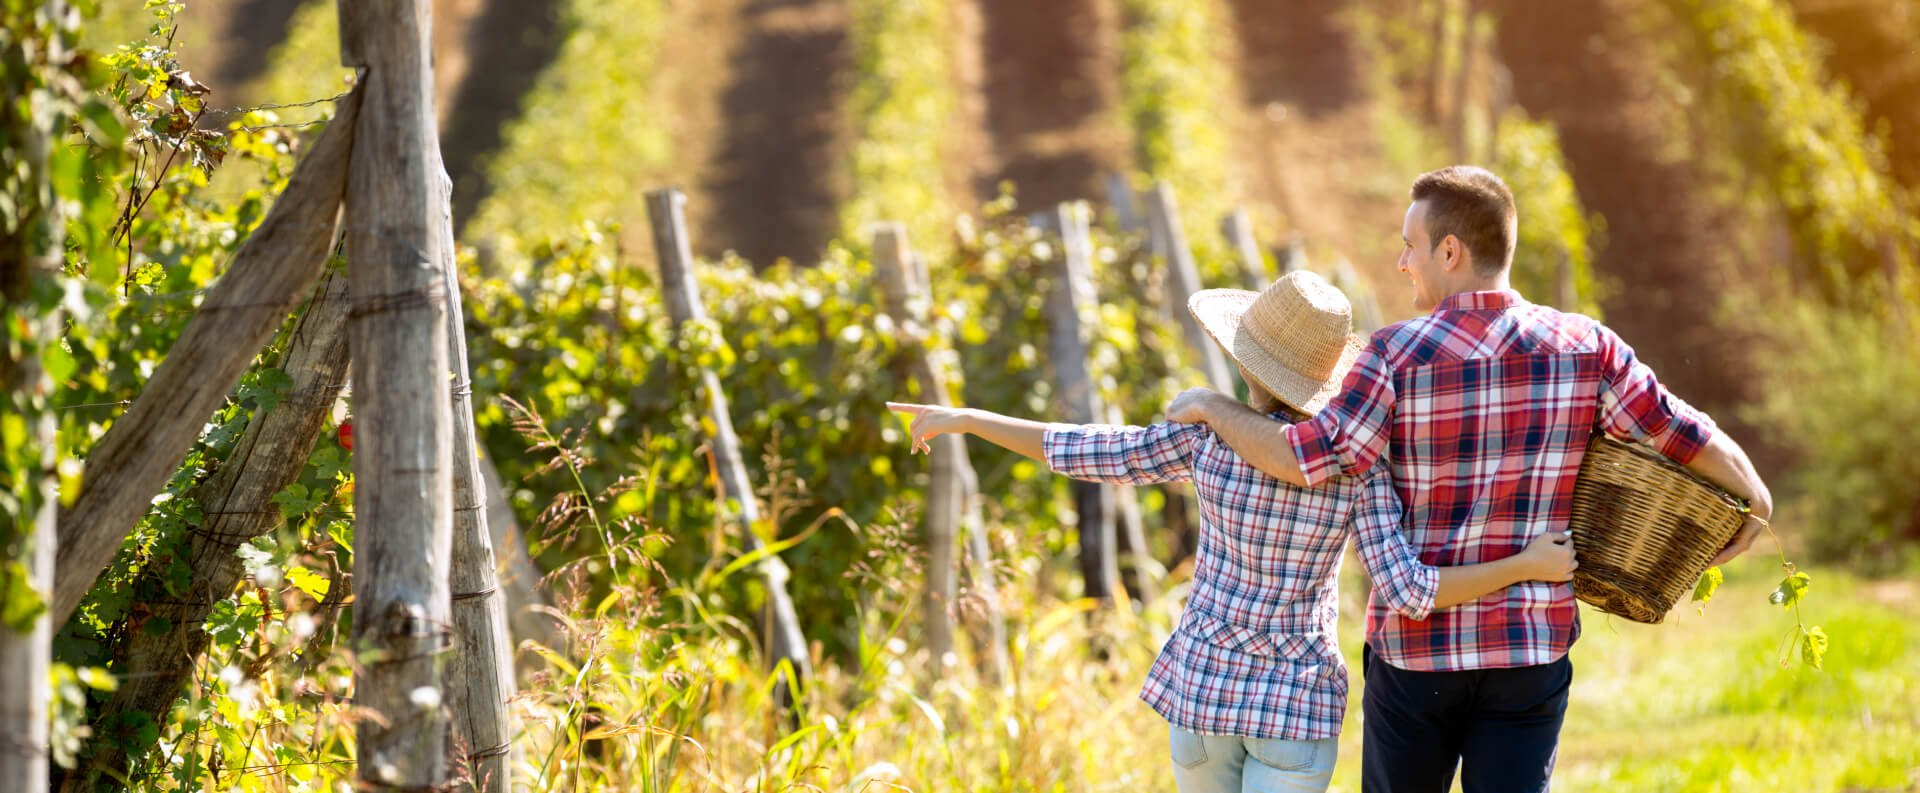 A couple wearing flannel shirts walk along a vineyard in Sonoma County, California.